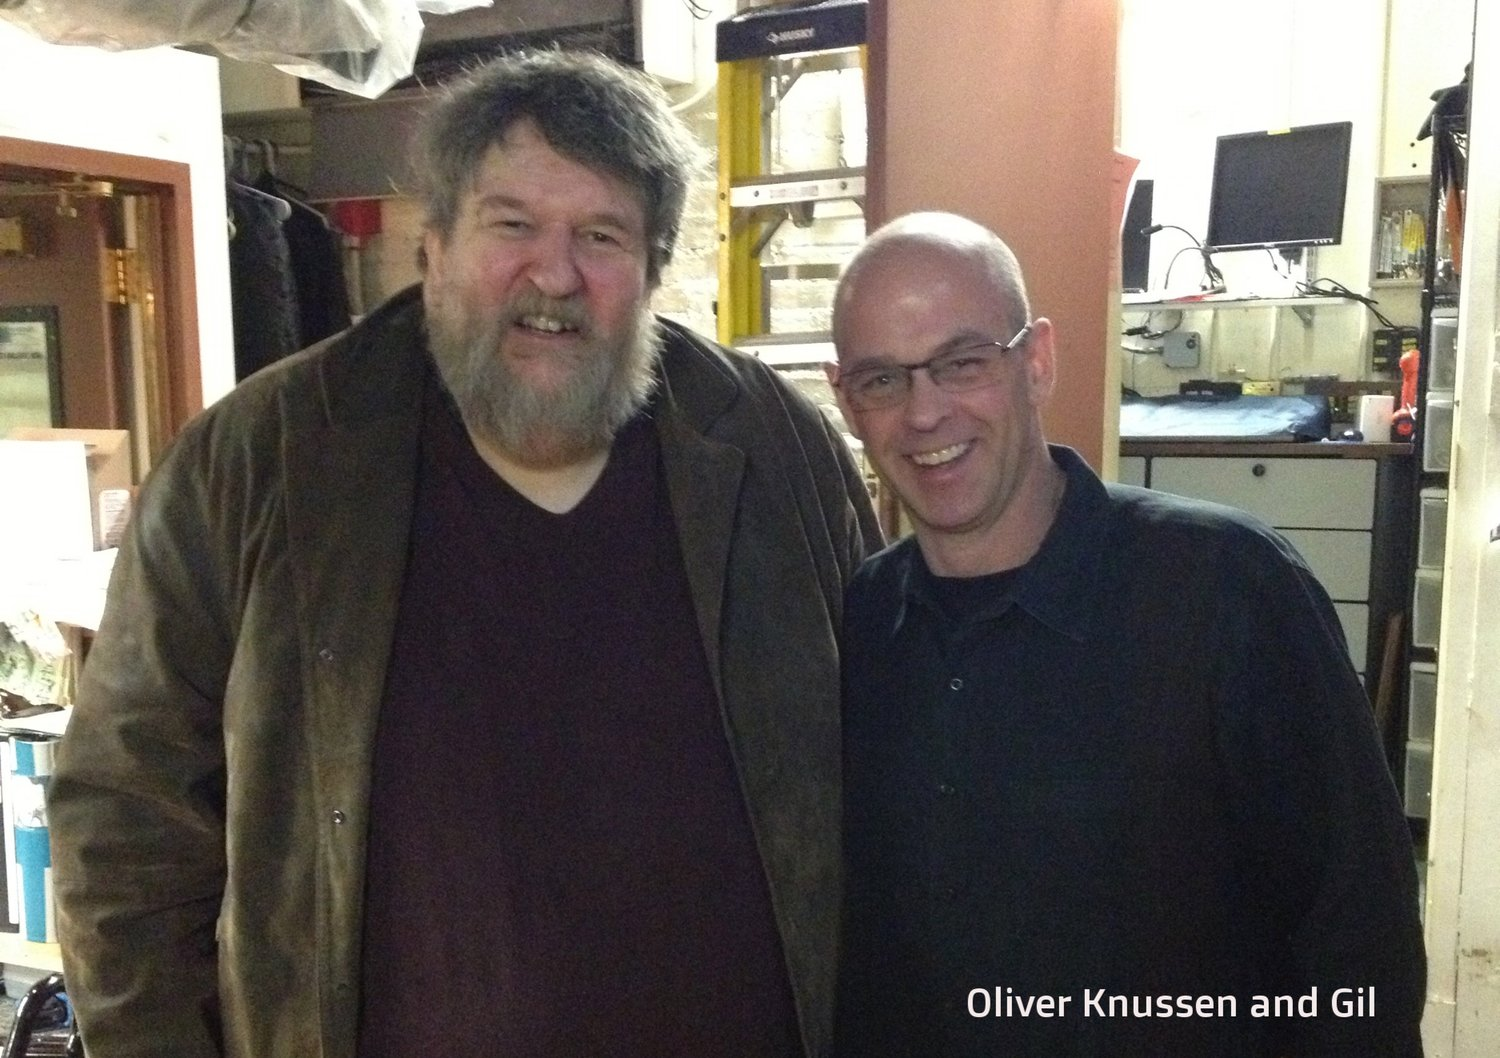 Oliver Knussen and Gil